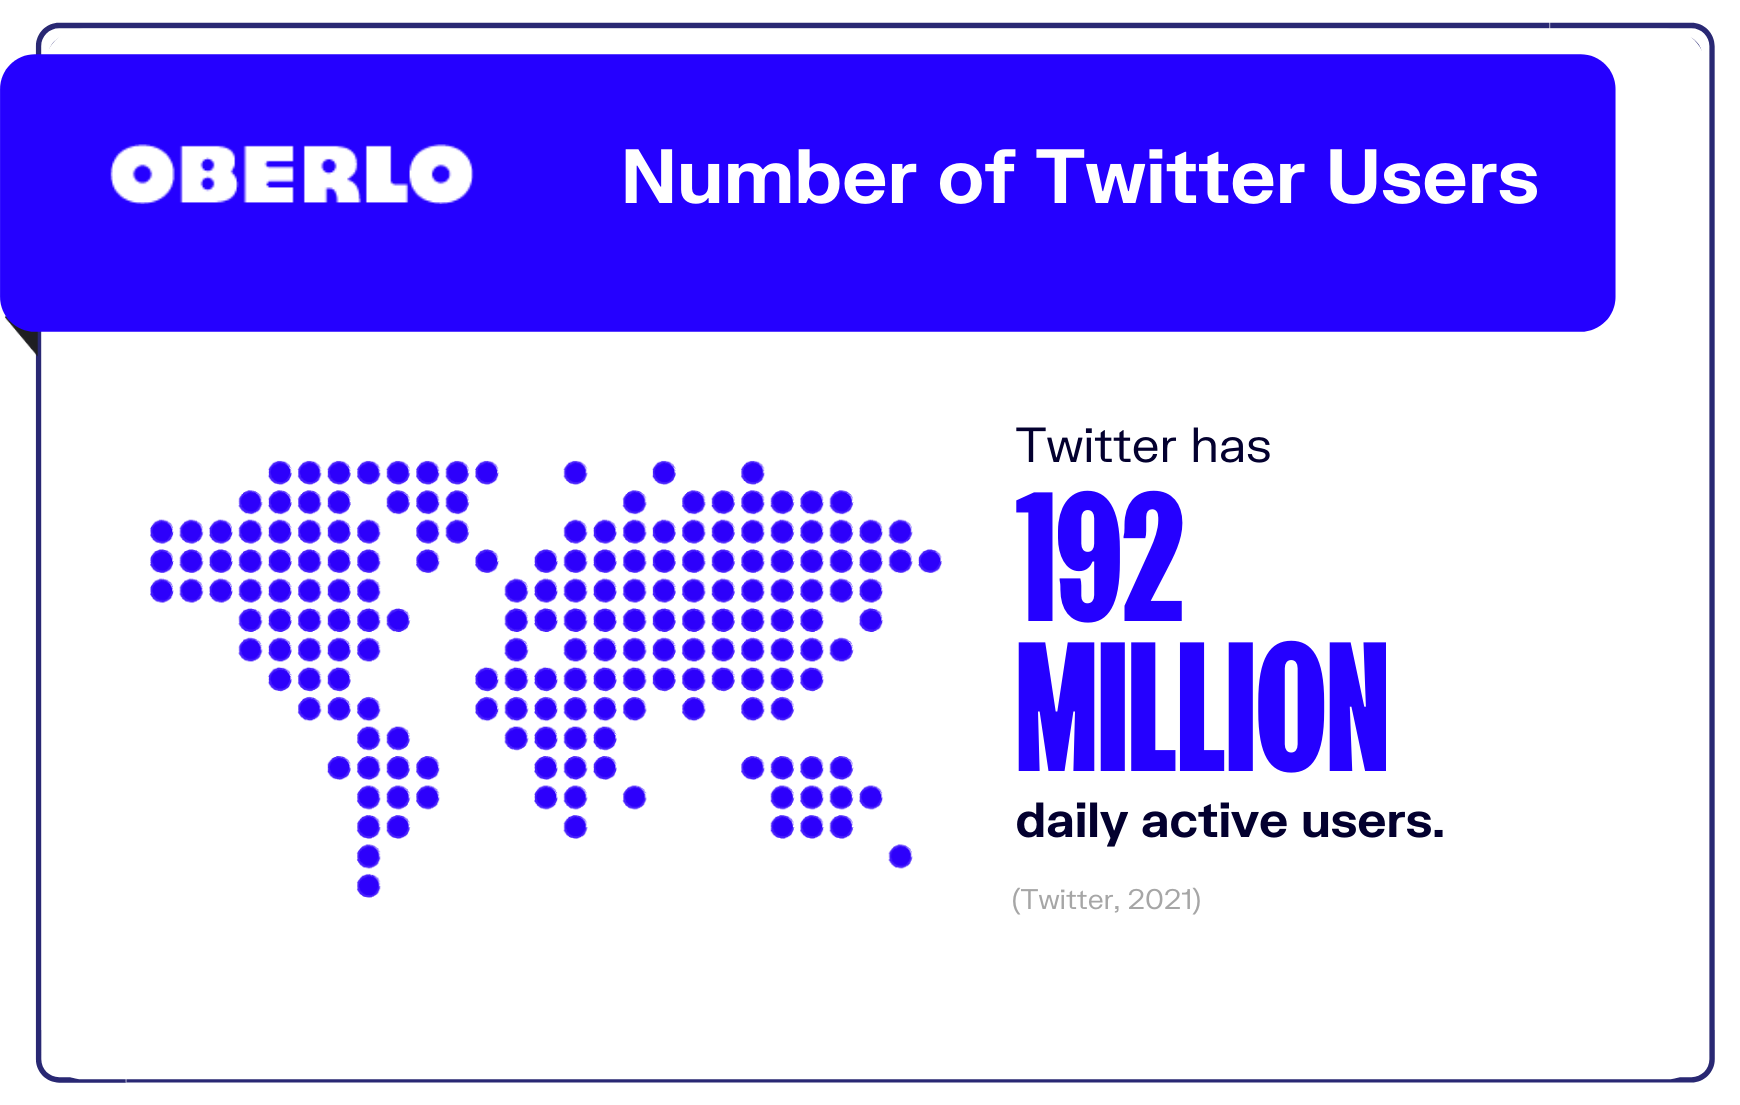 Number of Twitter users graphic